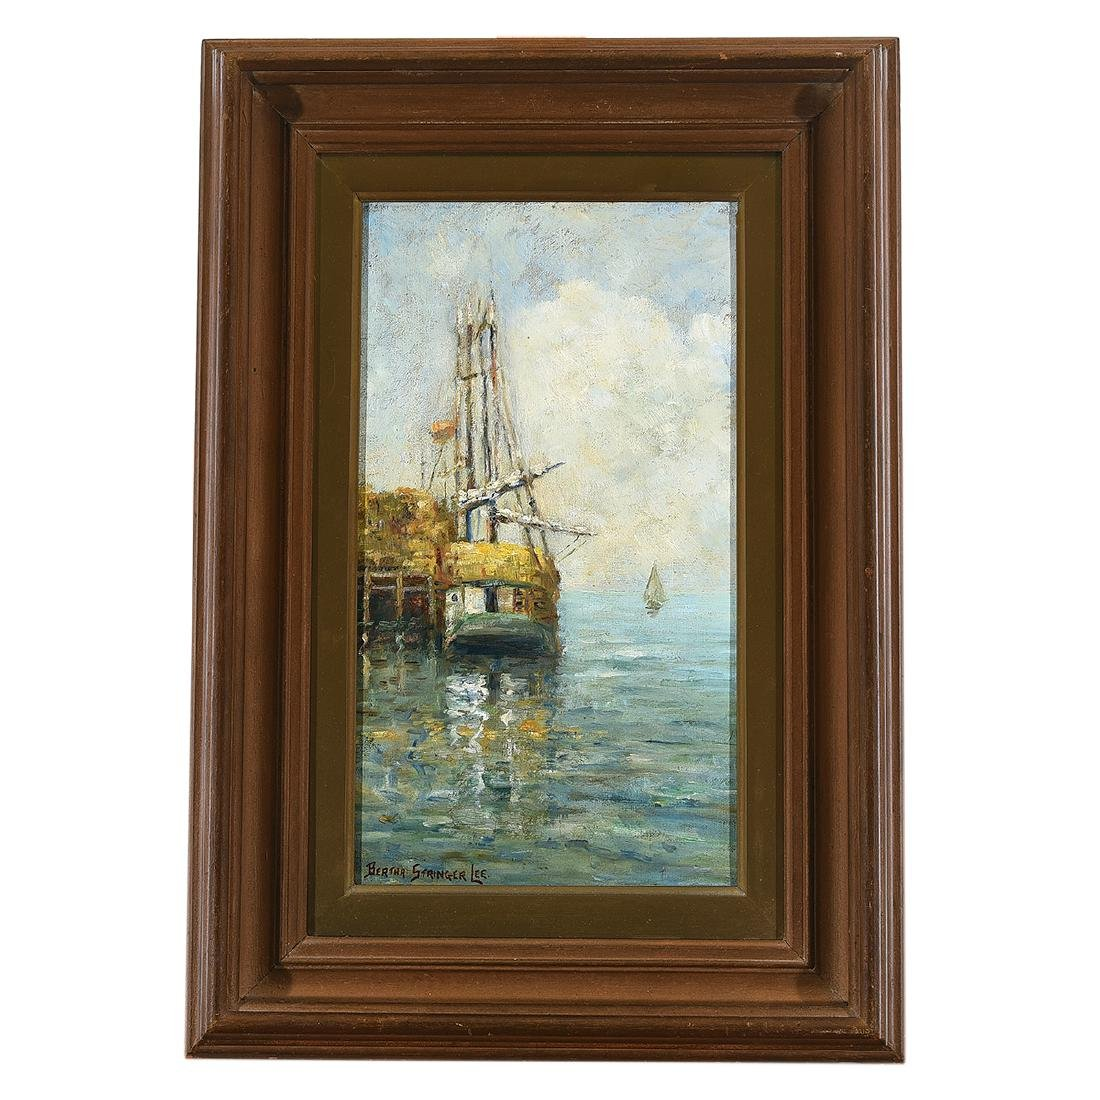 "Bertha Stringer Lee ""Sailboat in Dock"" oil on panel - 4"